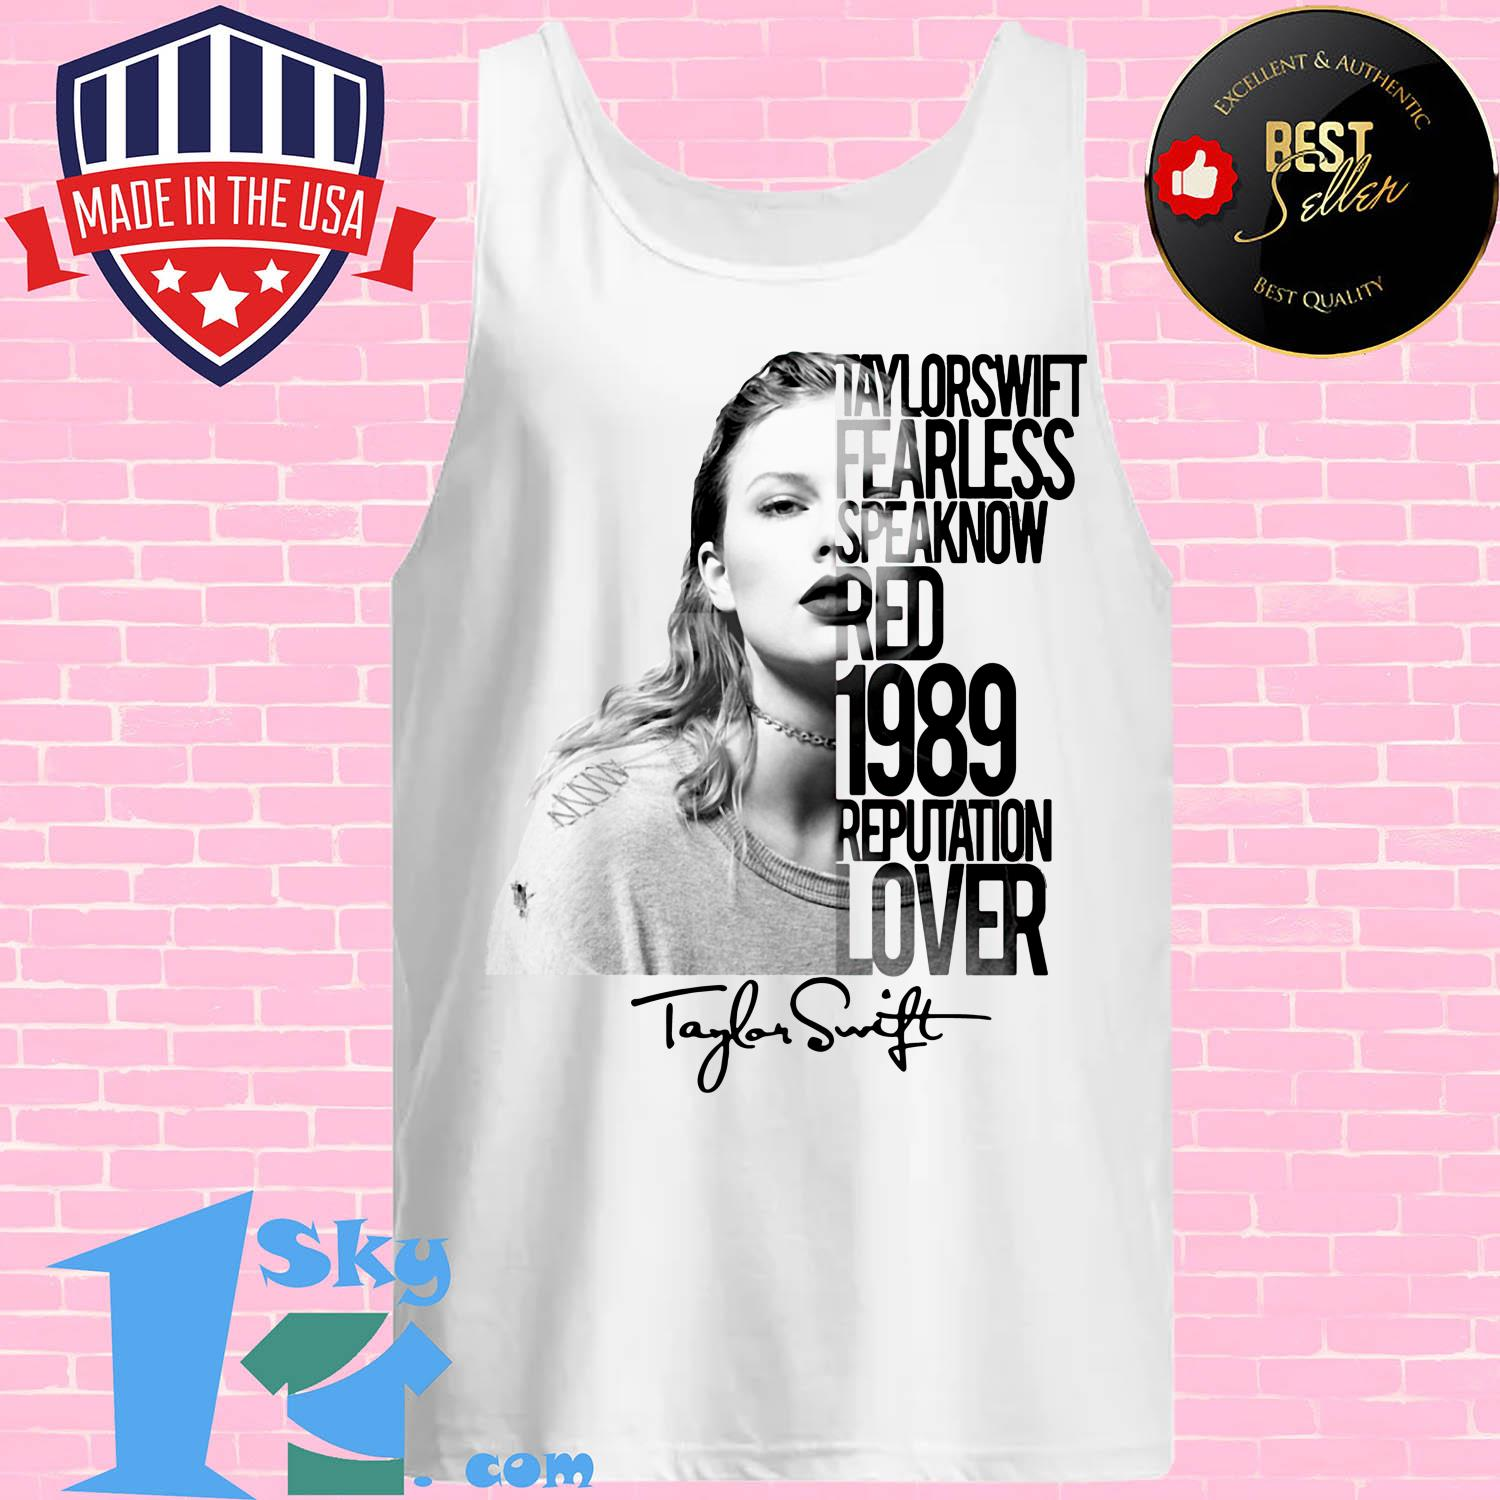 taylor swift fearless speak now red 1989 reputation lover poster tank top - Taylor Swift fearless Speak Now Red 1989 Reputation Lover Poster Signature shirt